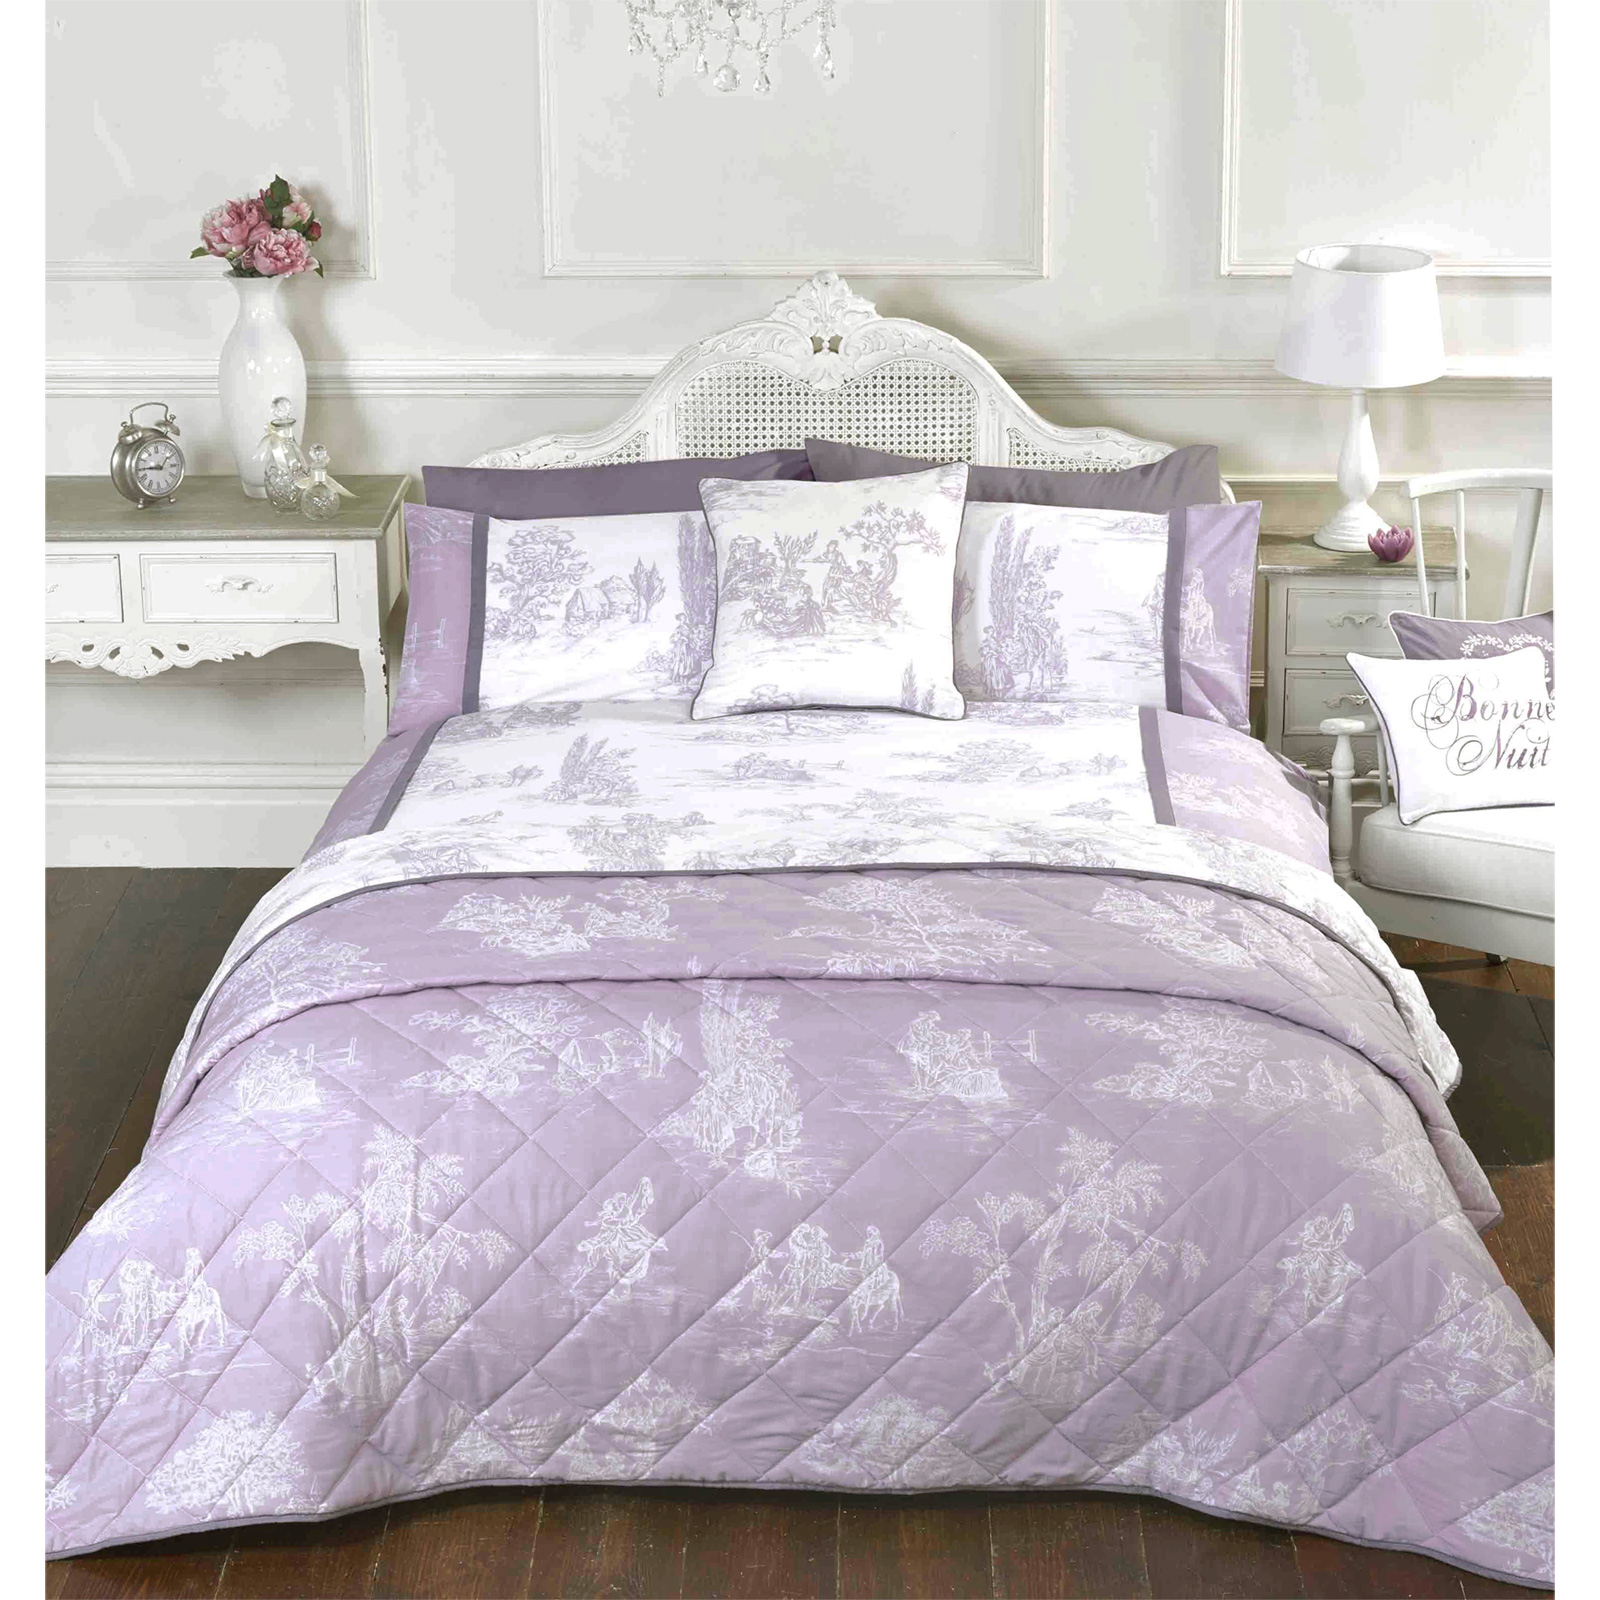 Toile Duvet Cover French Country Inspired Toile De Jouy Duvet Cover Set With